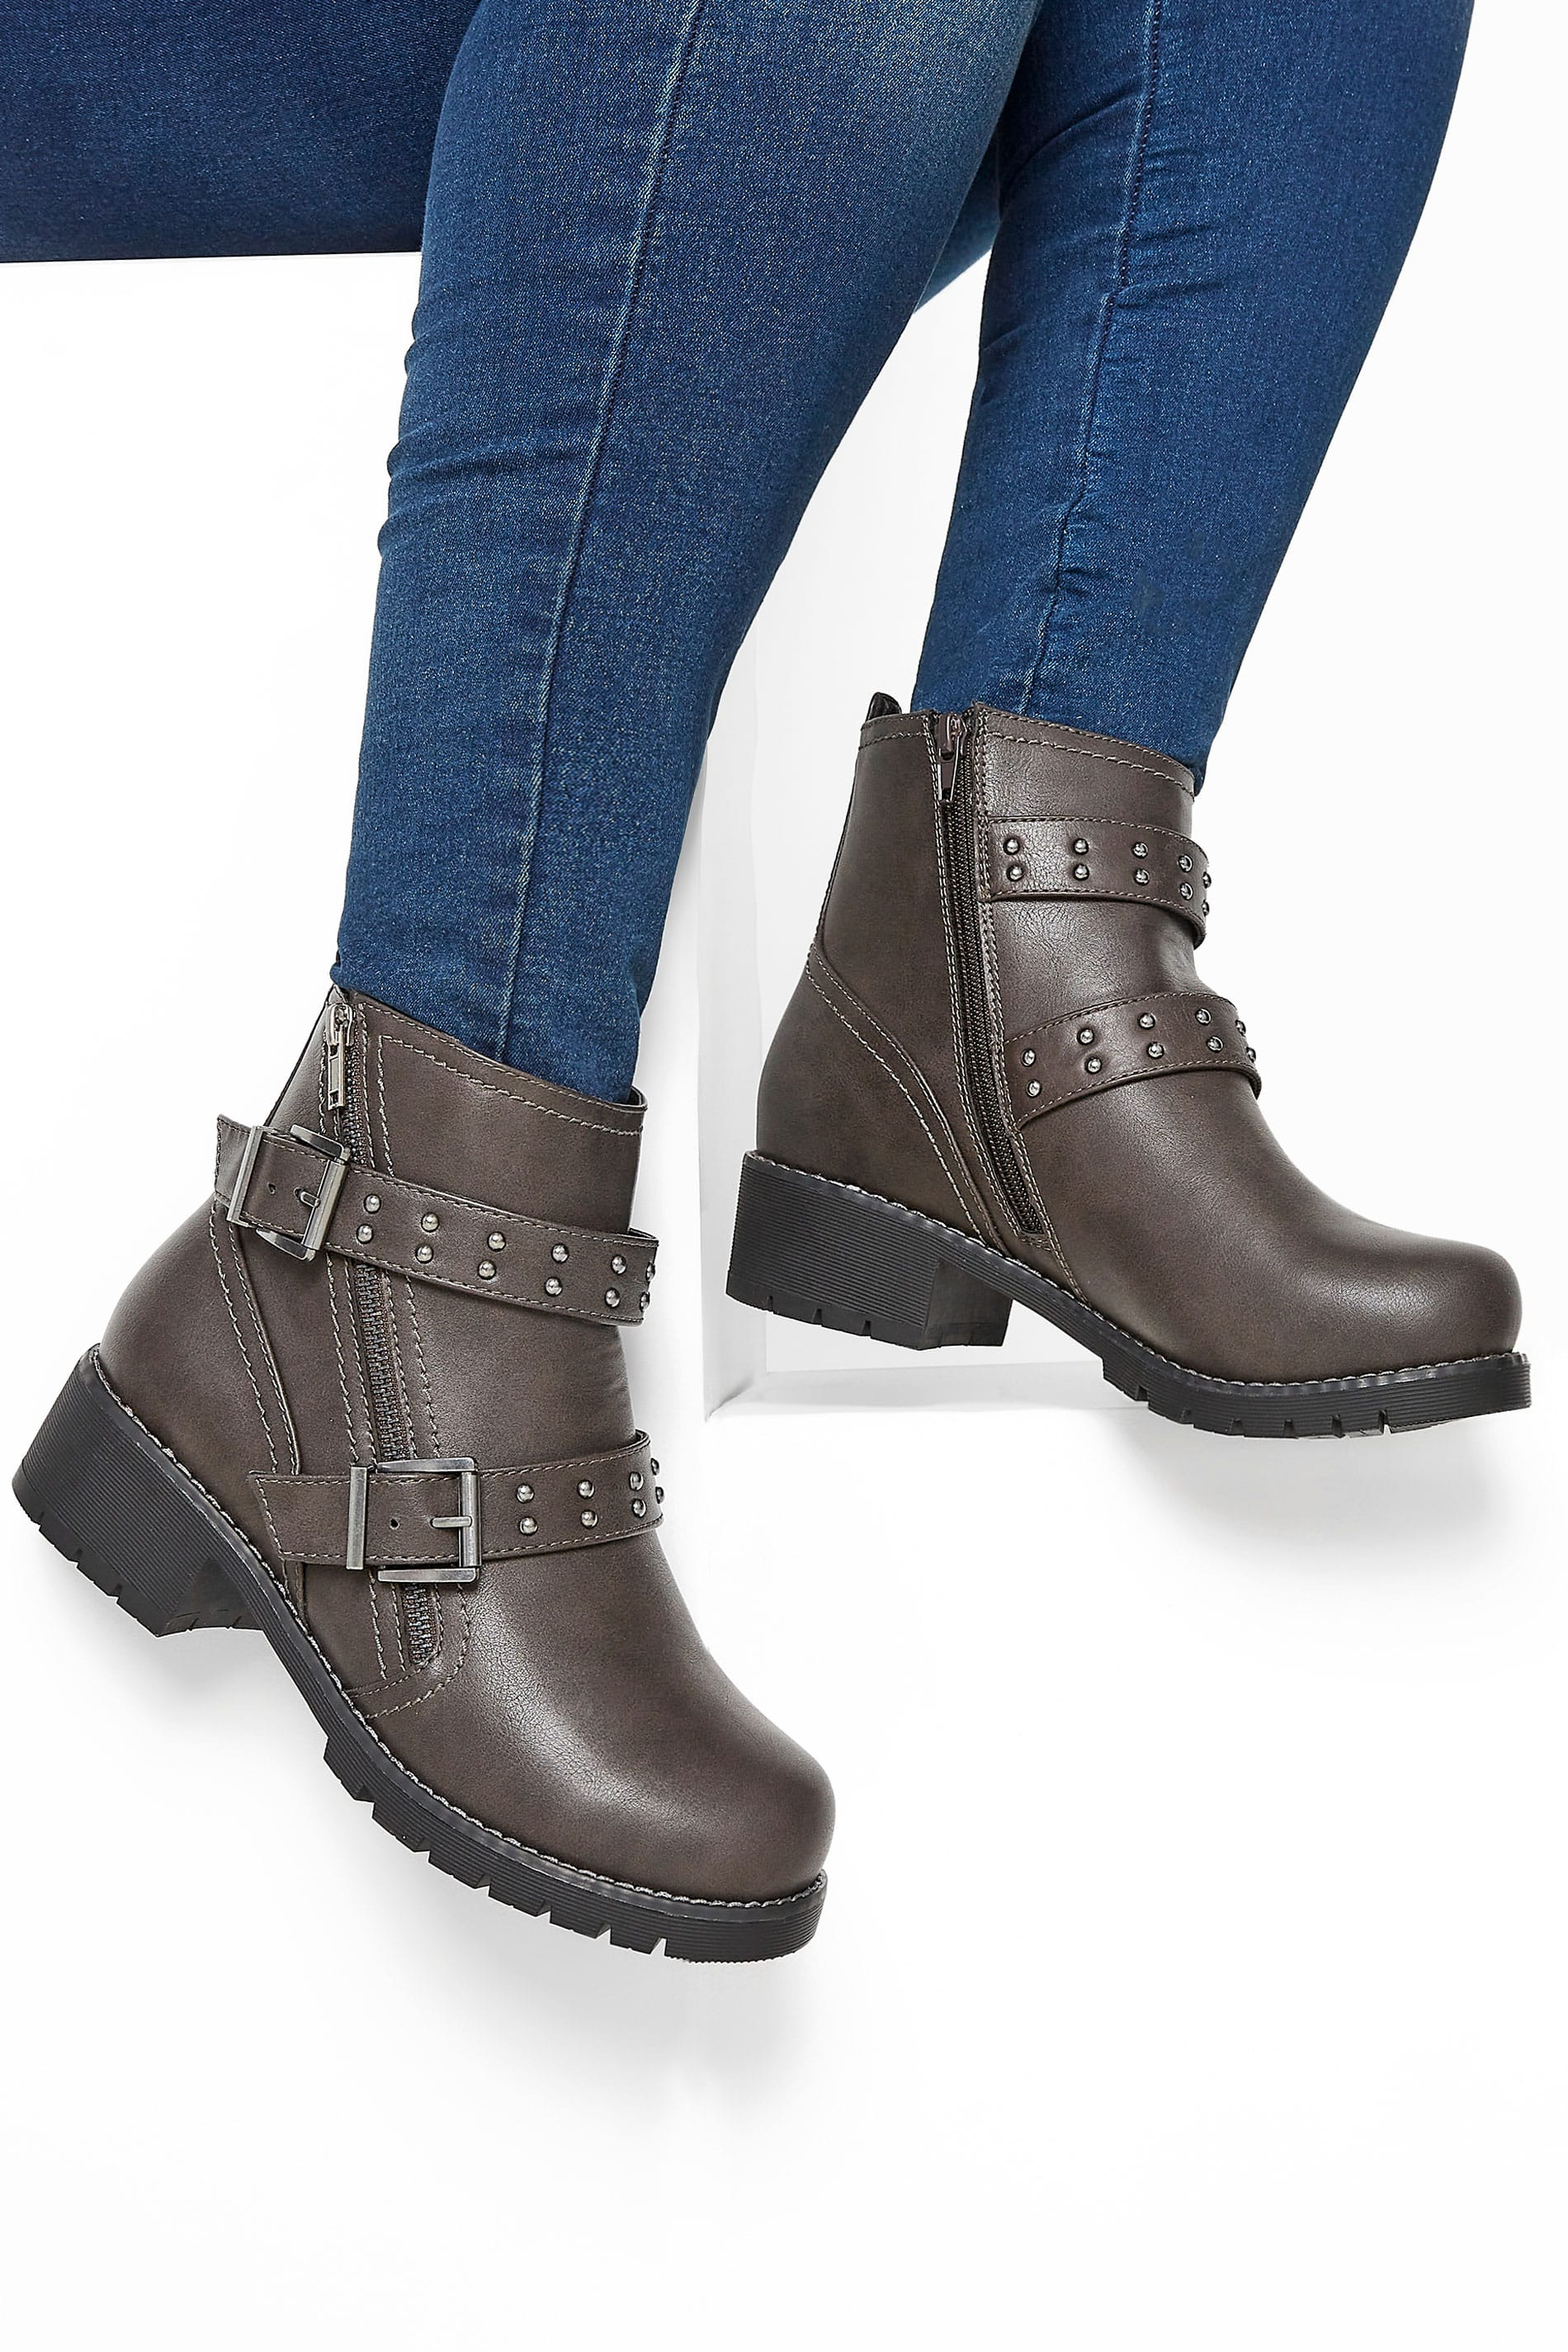 Yours Grey Stud Strap Buckle Ankle Boots In Extra Wide Fit